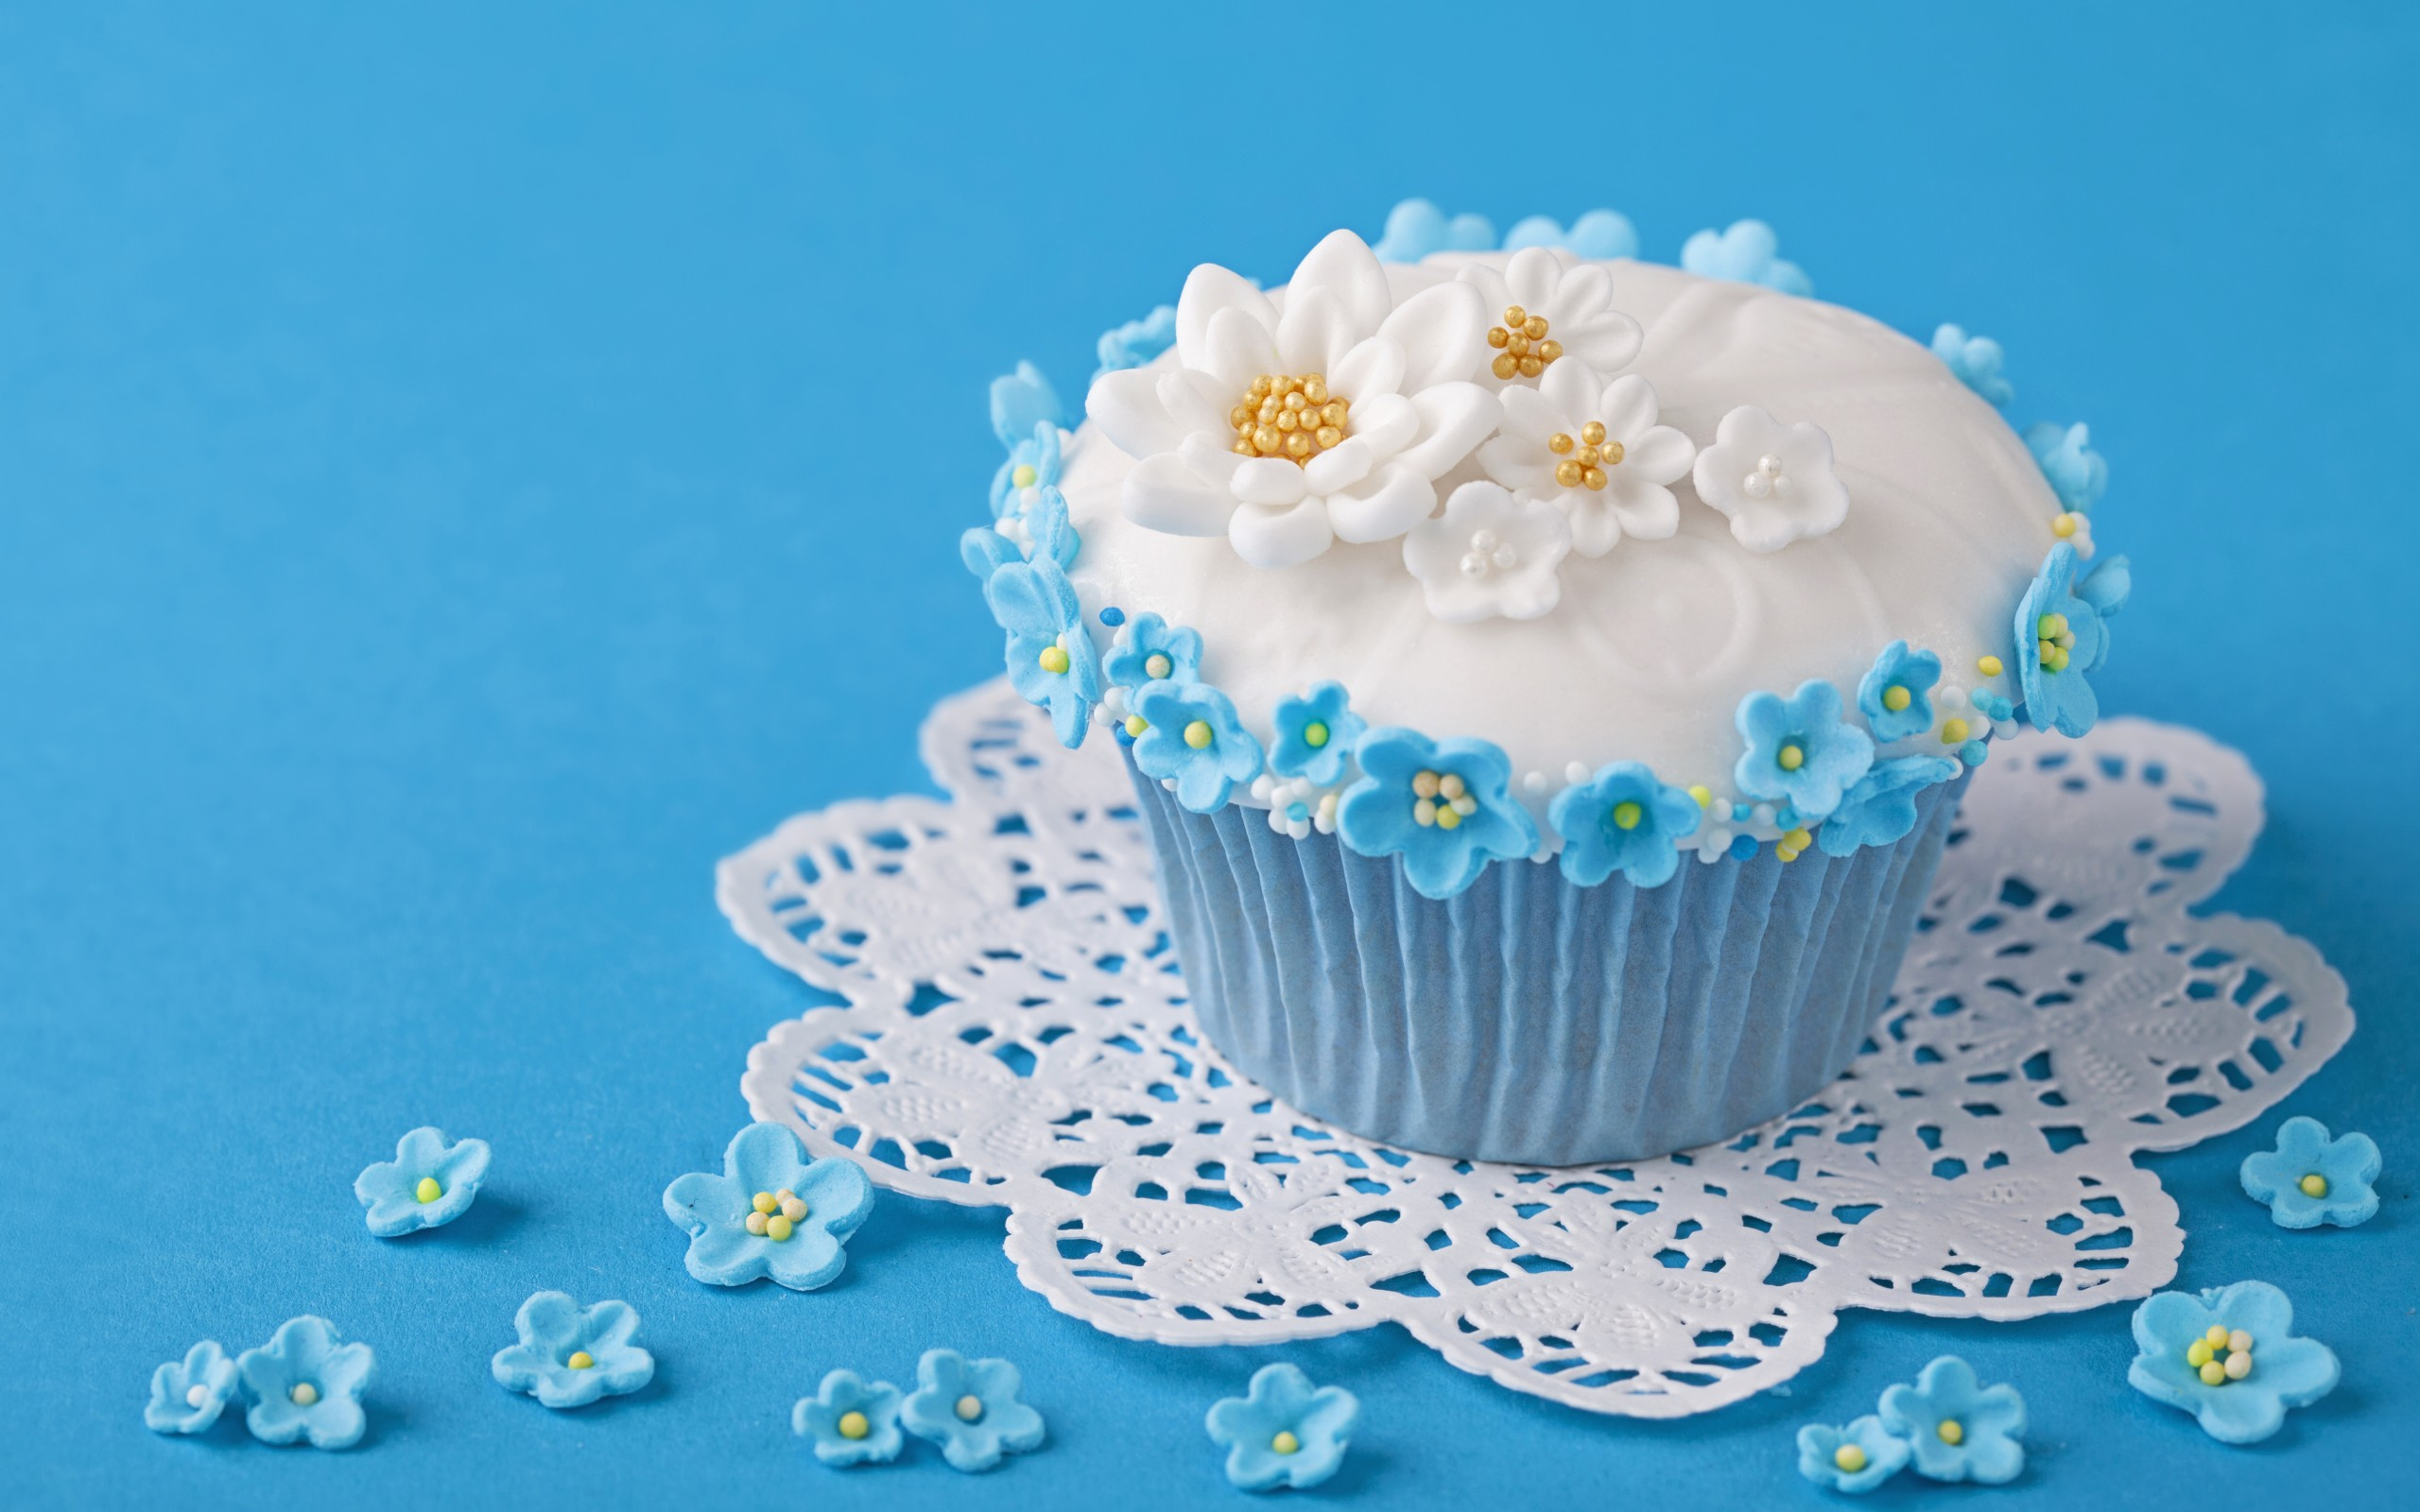 Pics Photos - View Cupcakes Dessert Sweet Hd Wallpaper